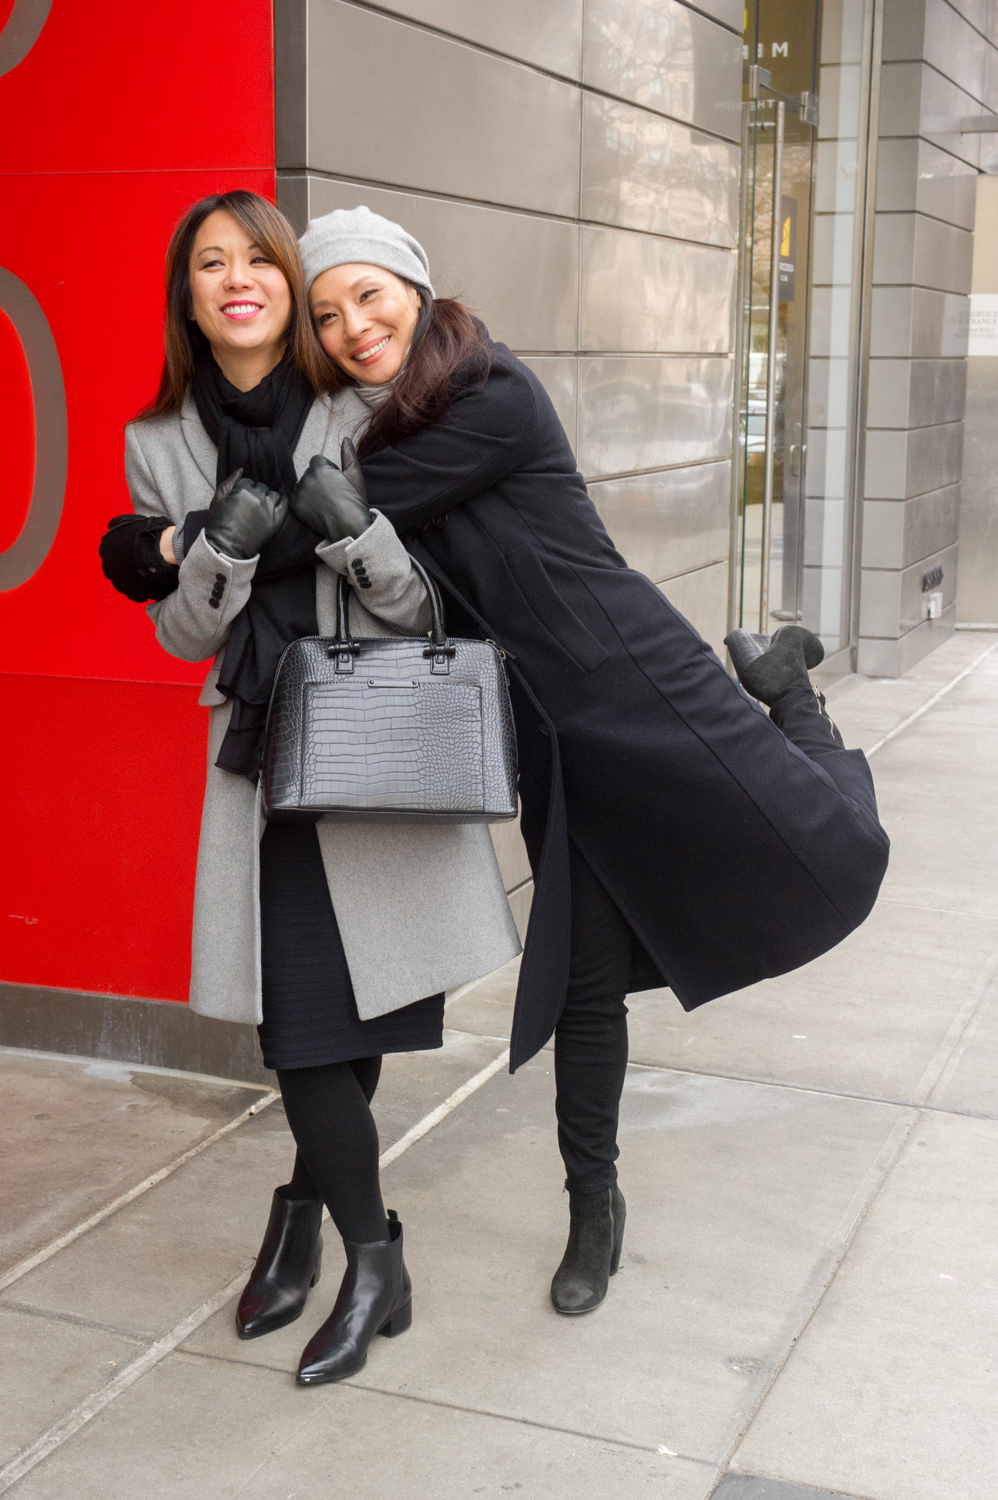 Lucy Liu and Samantha Quan have some fun like real sisters